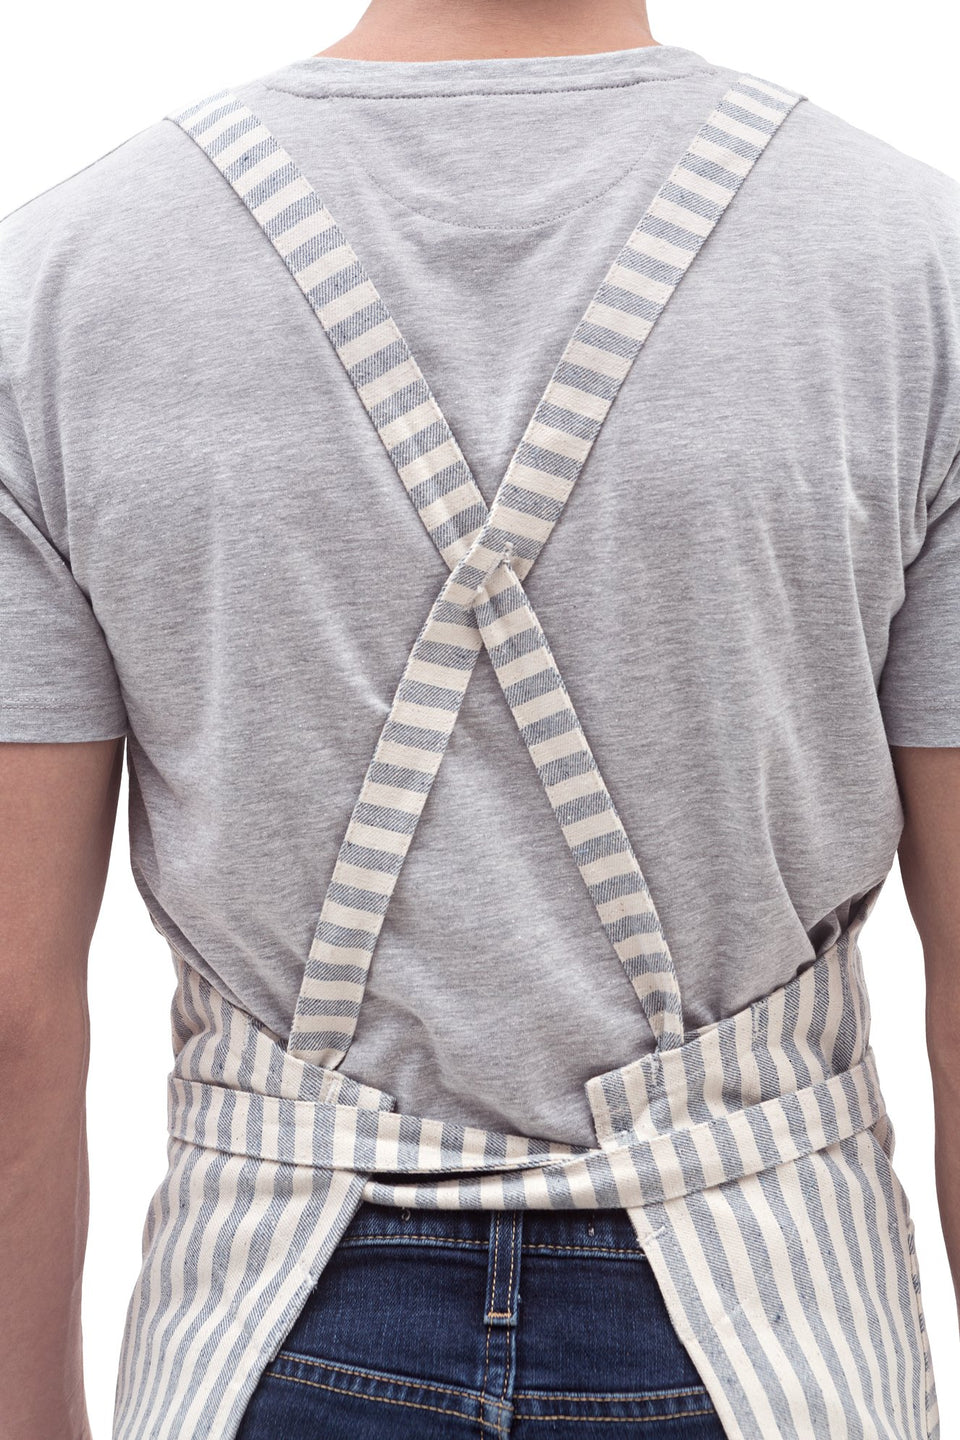 Crossback Bib Apron / Striped